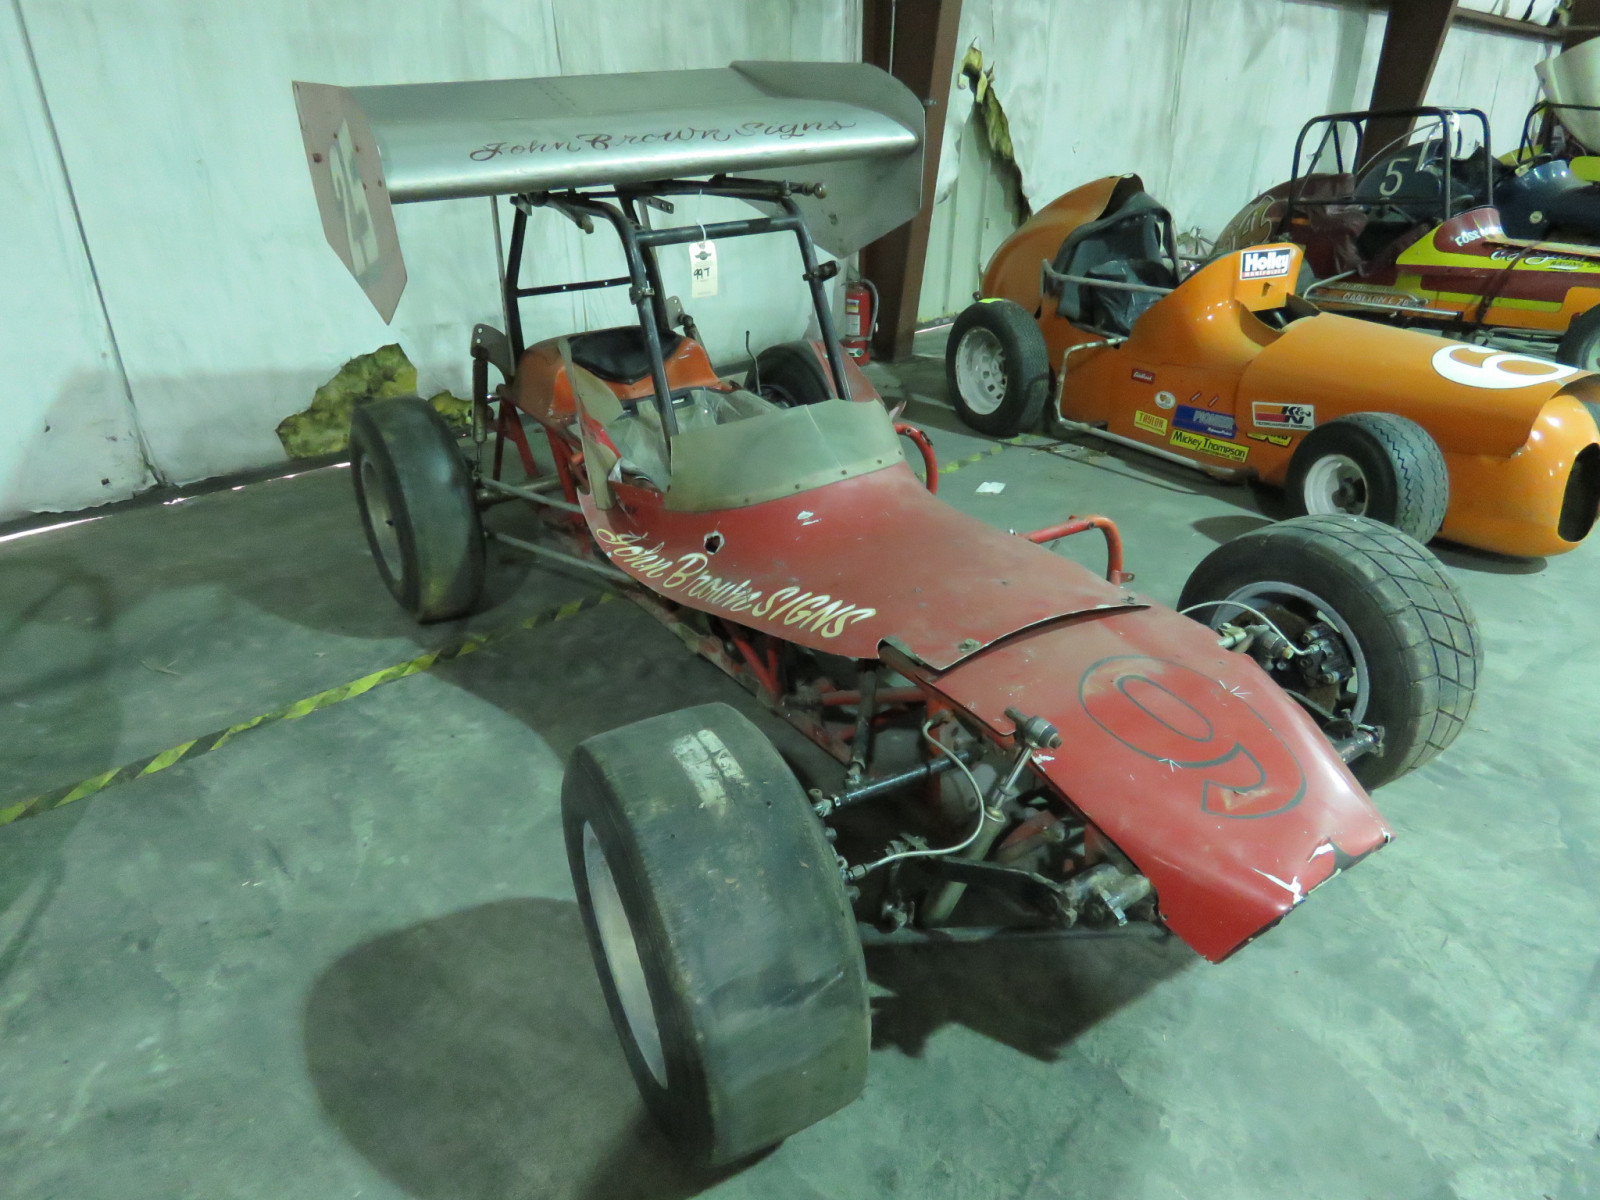 Vintage Edmunds Type Roadster Midget Race Car - Image 2